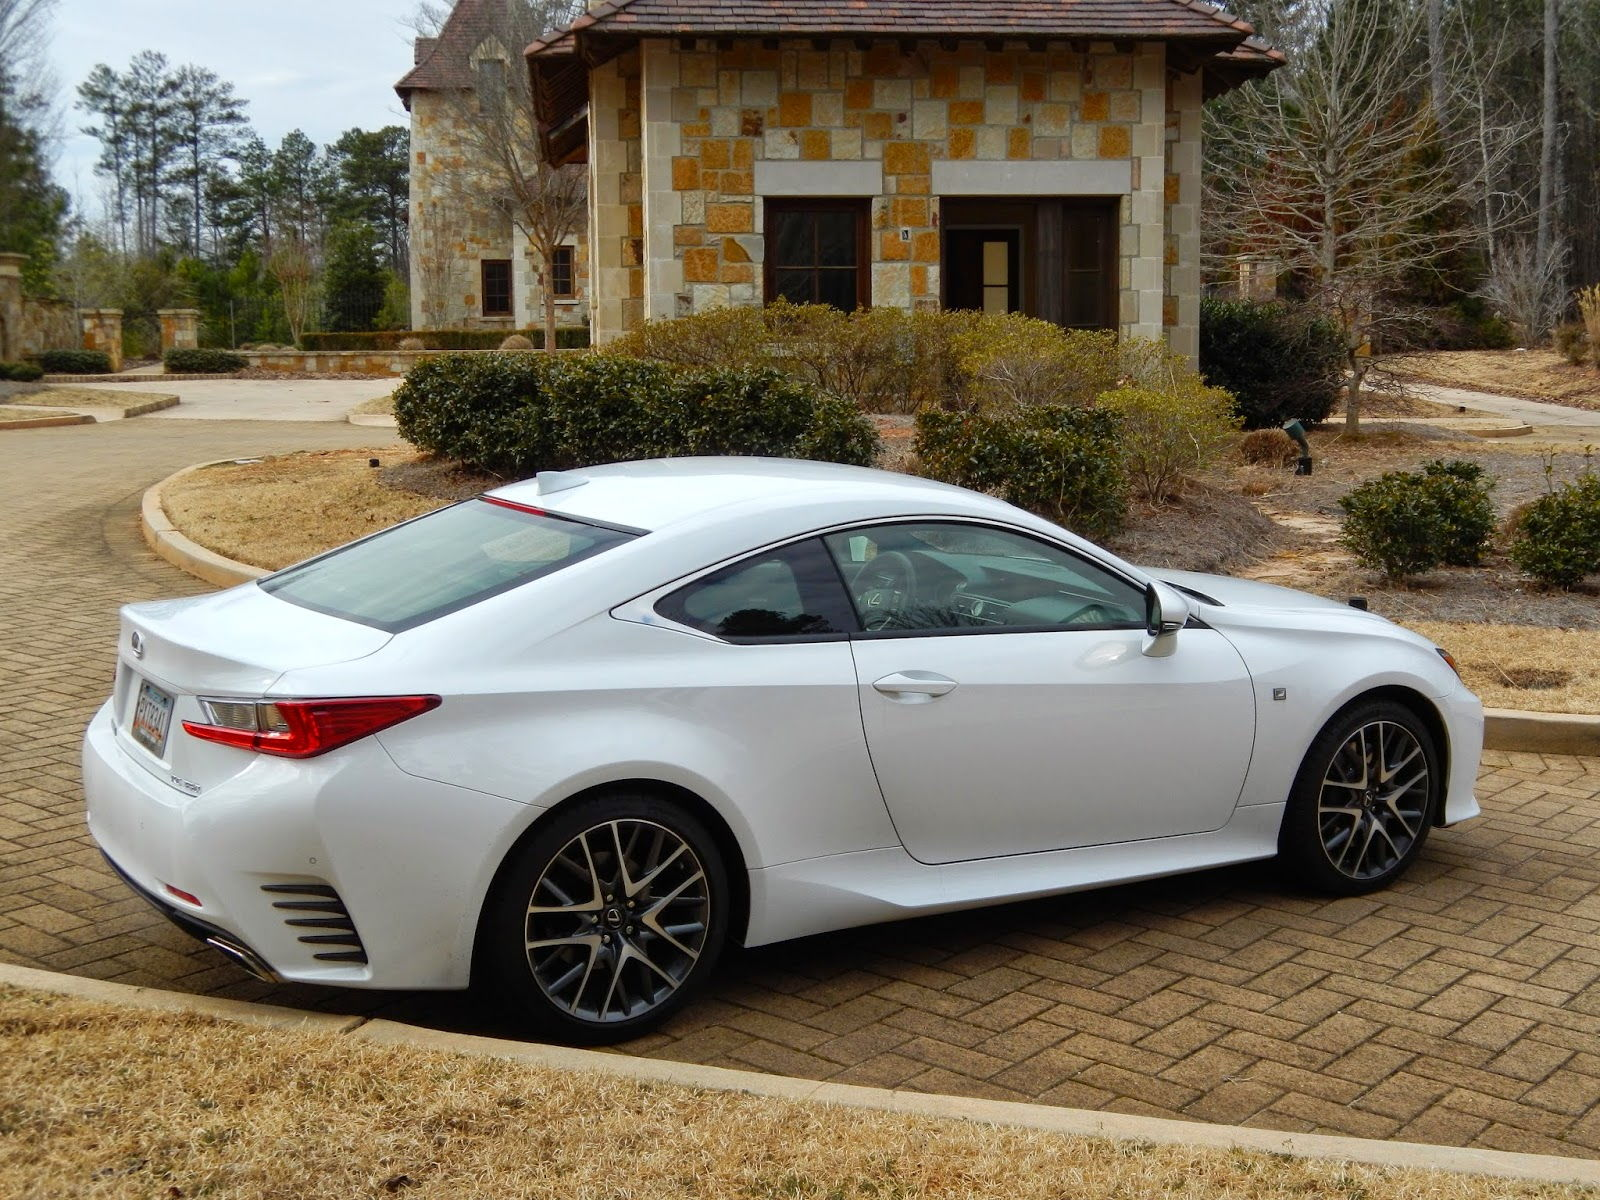 Lexus rc coupe white